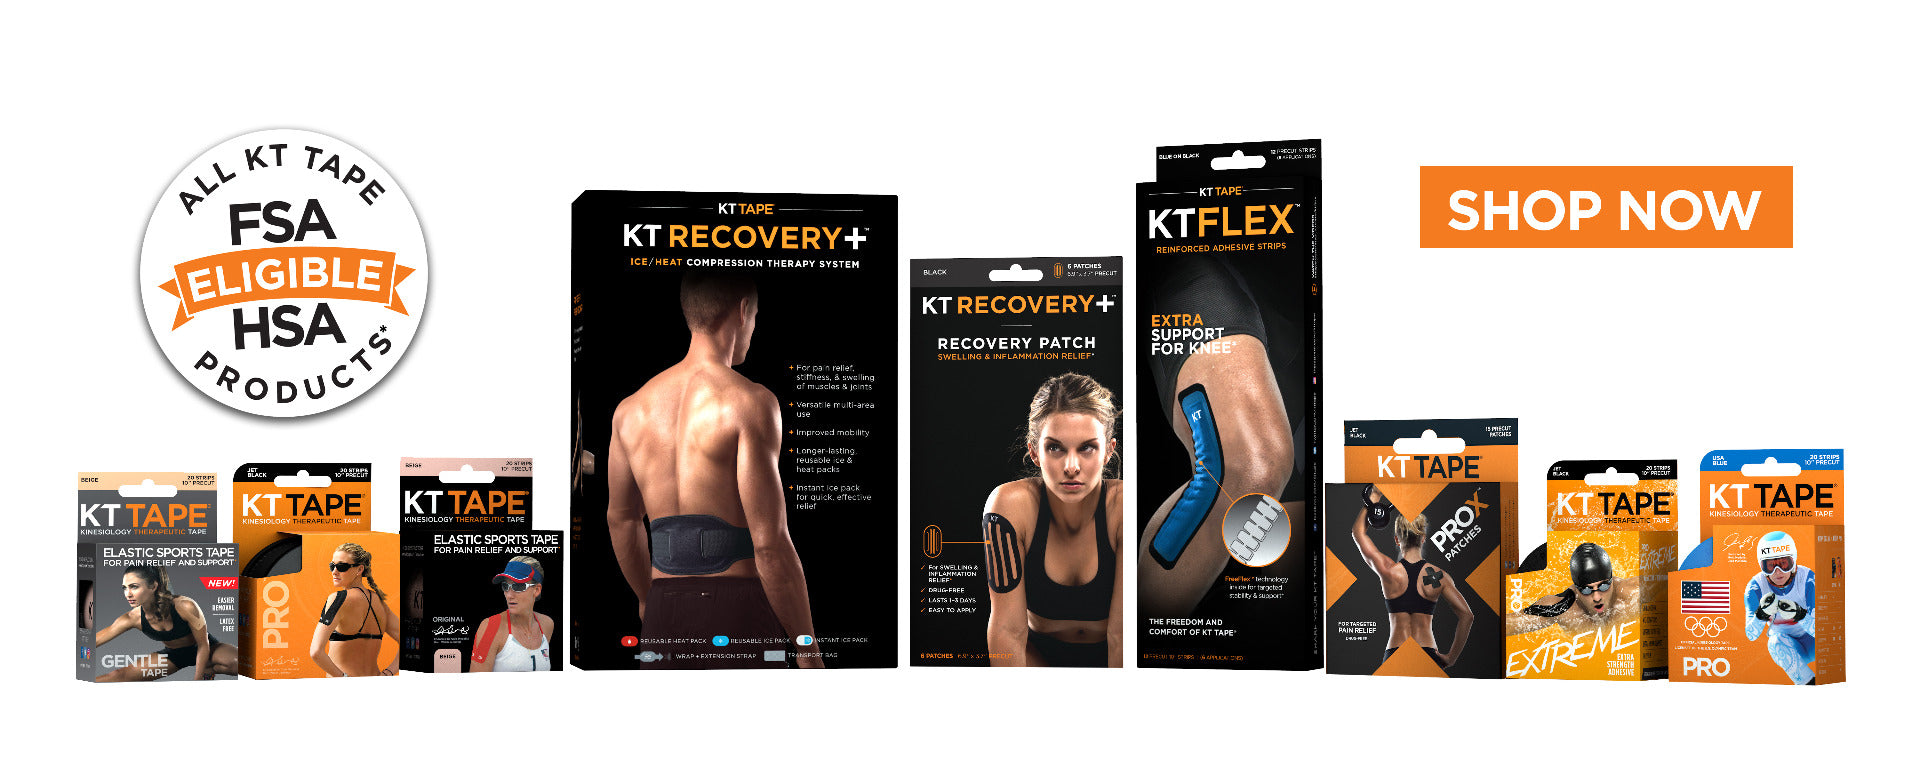 All KT Tape Products are FSA/HSA Eligible